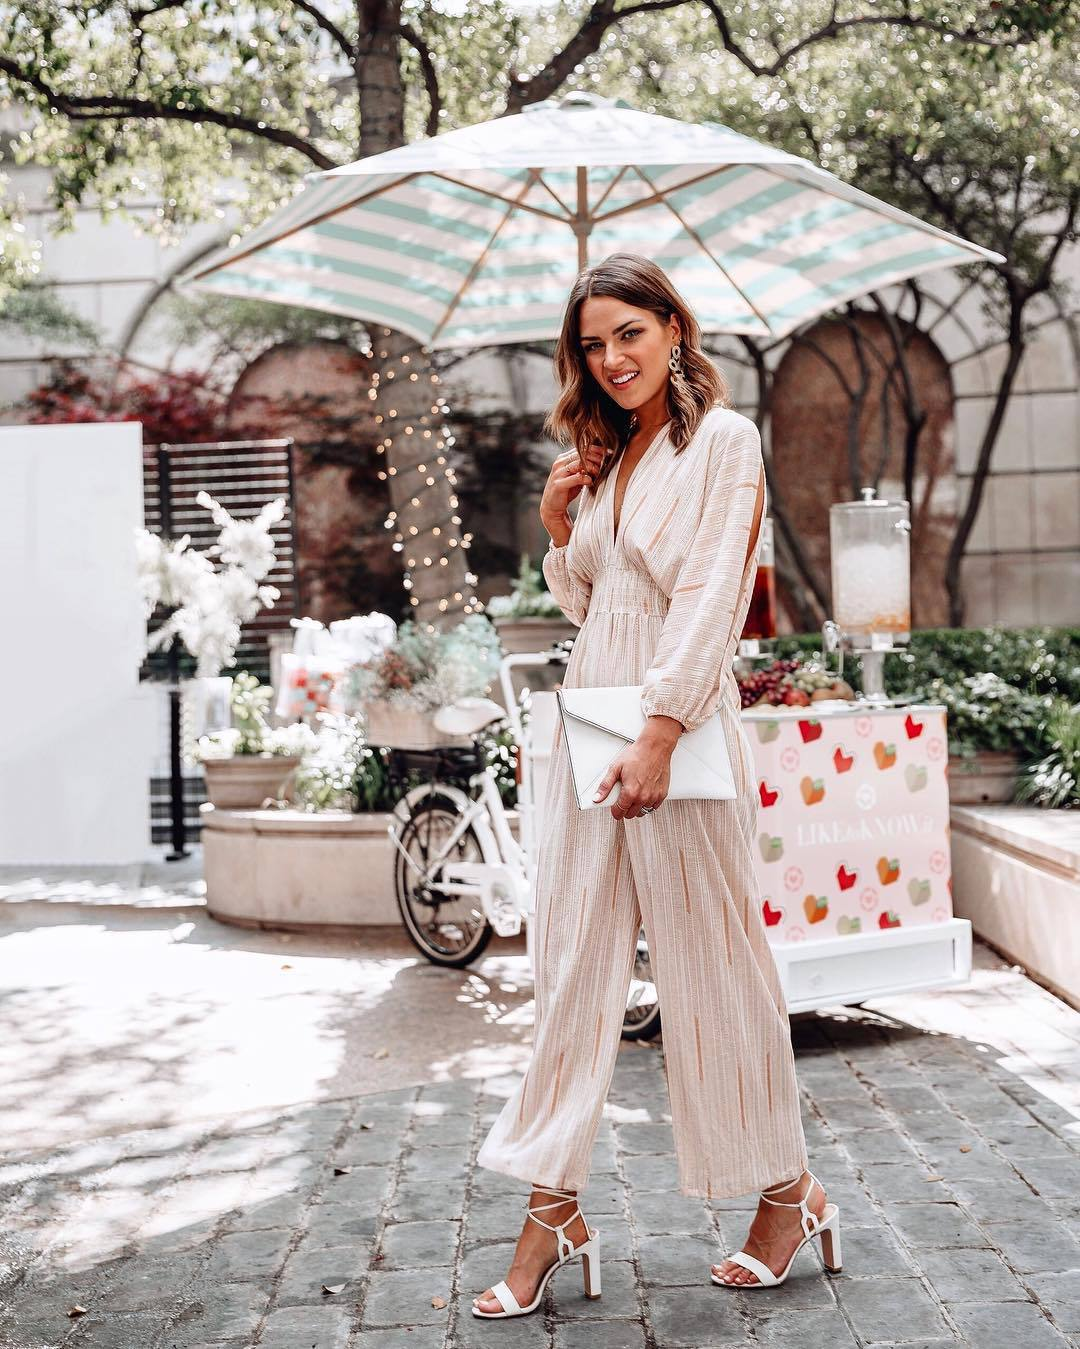 jumpsuit long sleeves v neck white sandals white bag